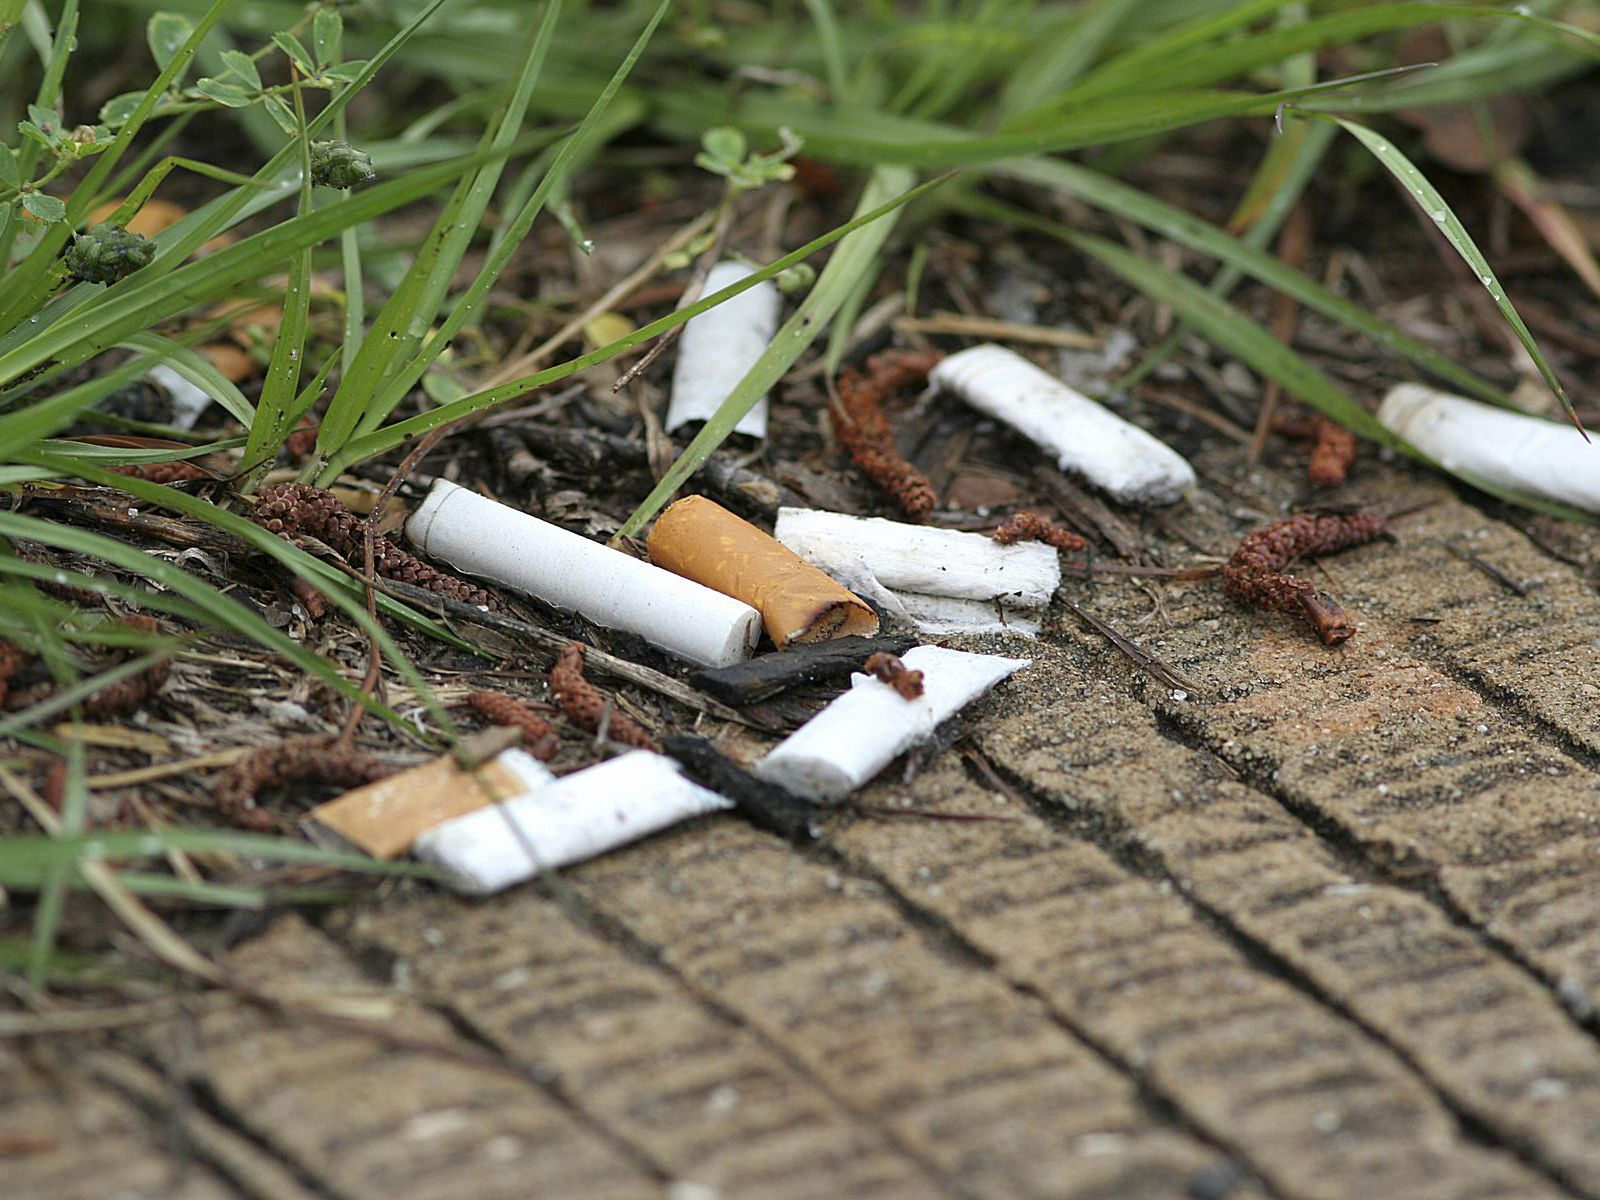 How Cigarette Butts Pollute the Environment